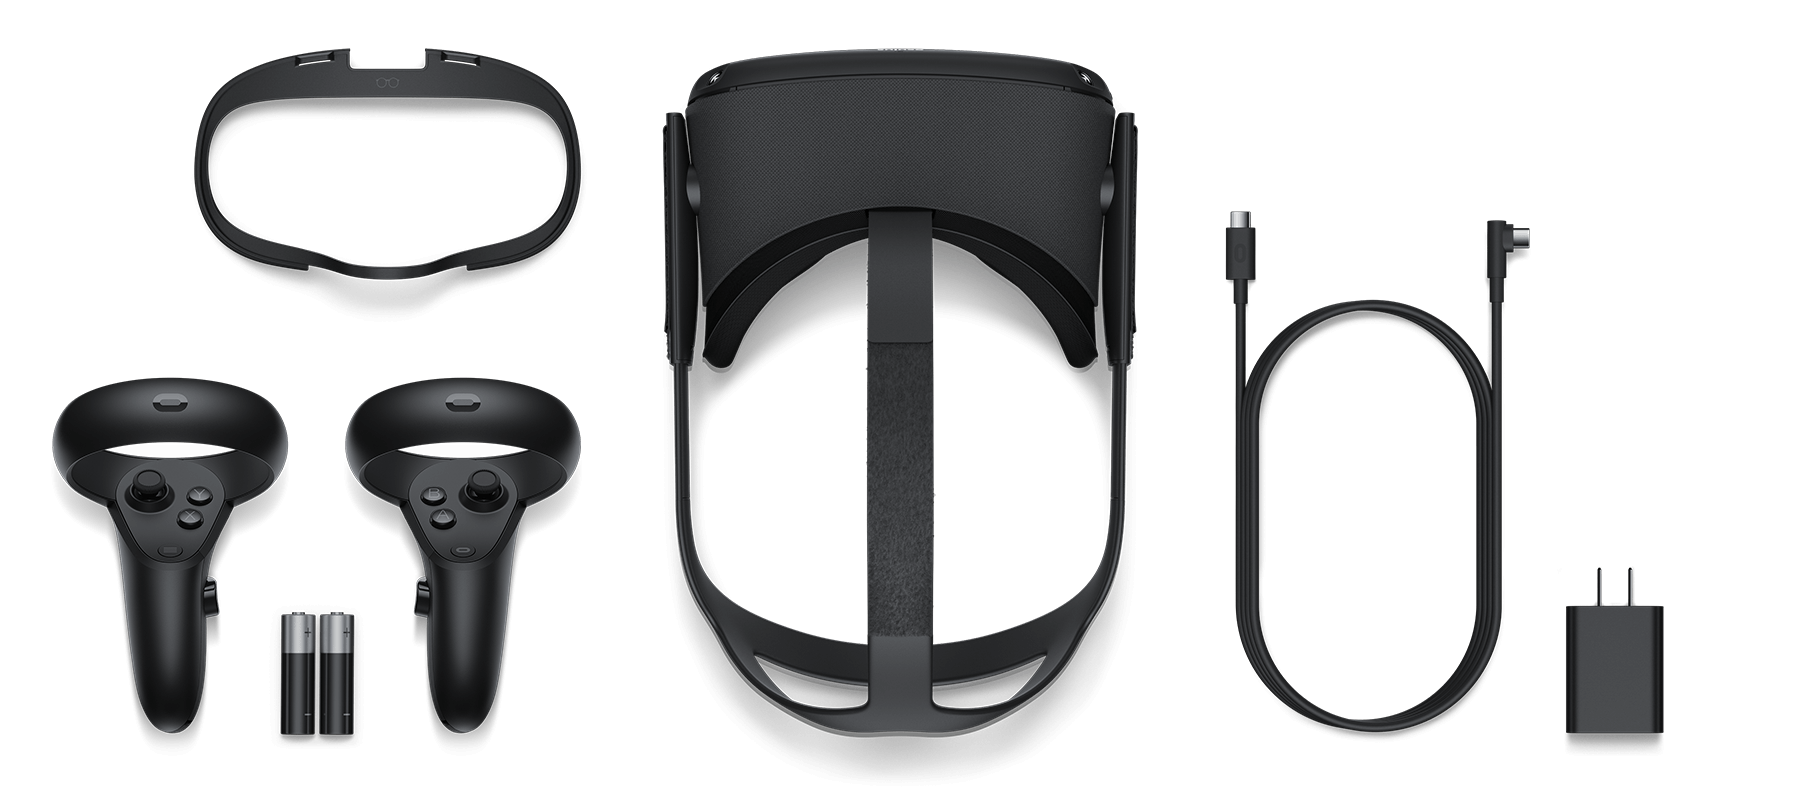 Oculus Quest - A great high-end standalone VR headset costing around £399.